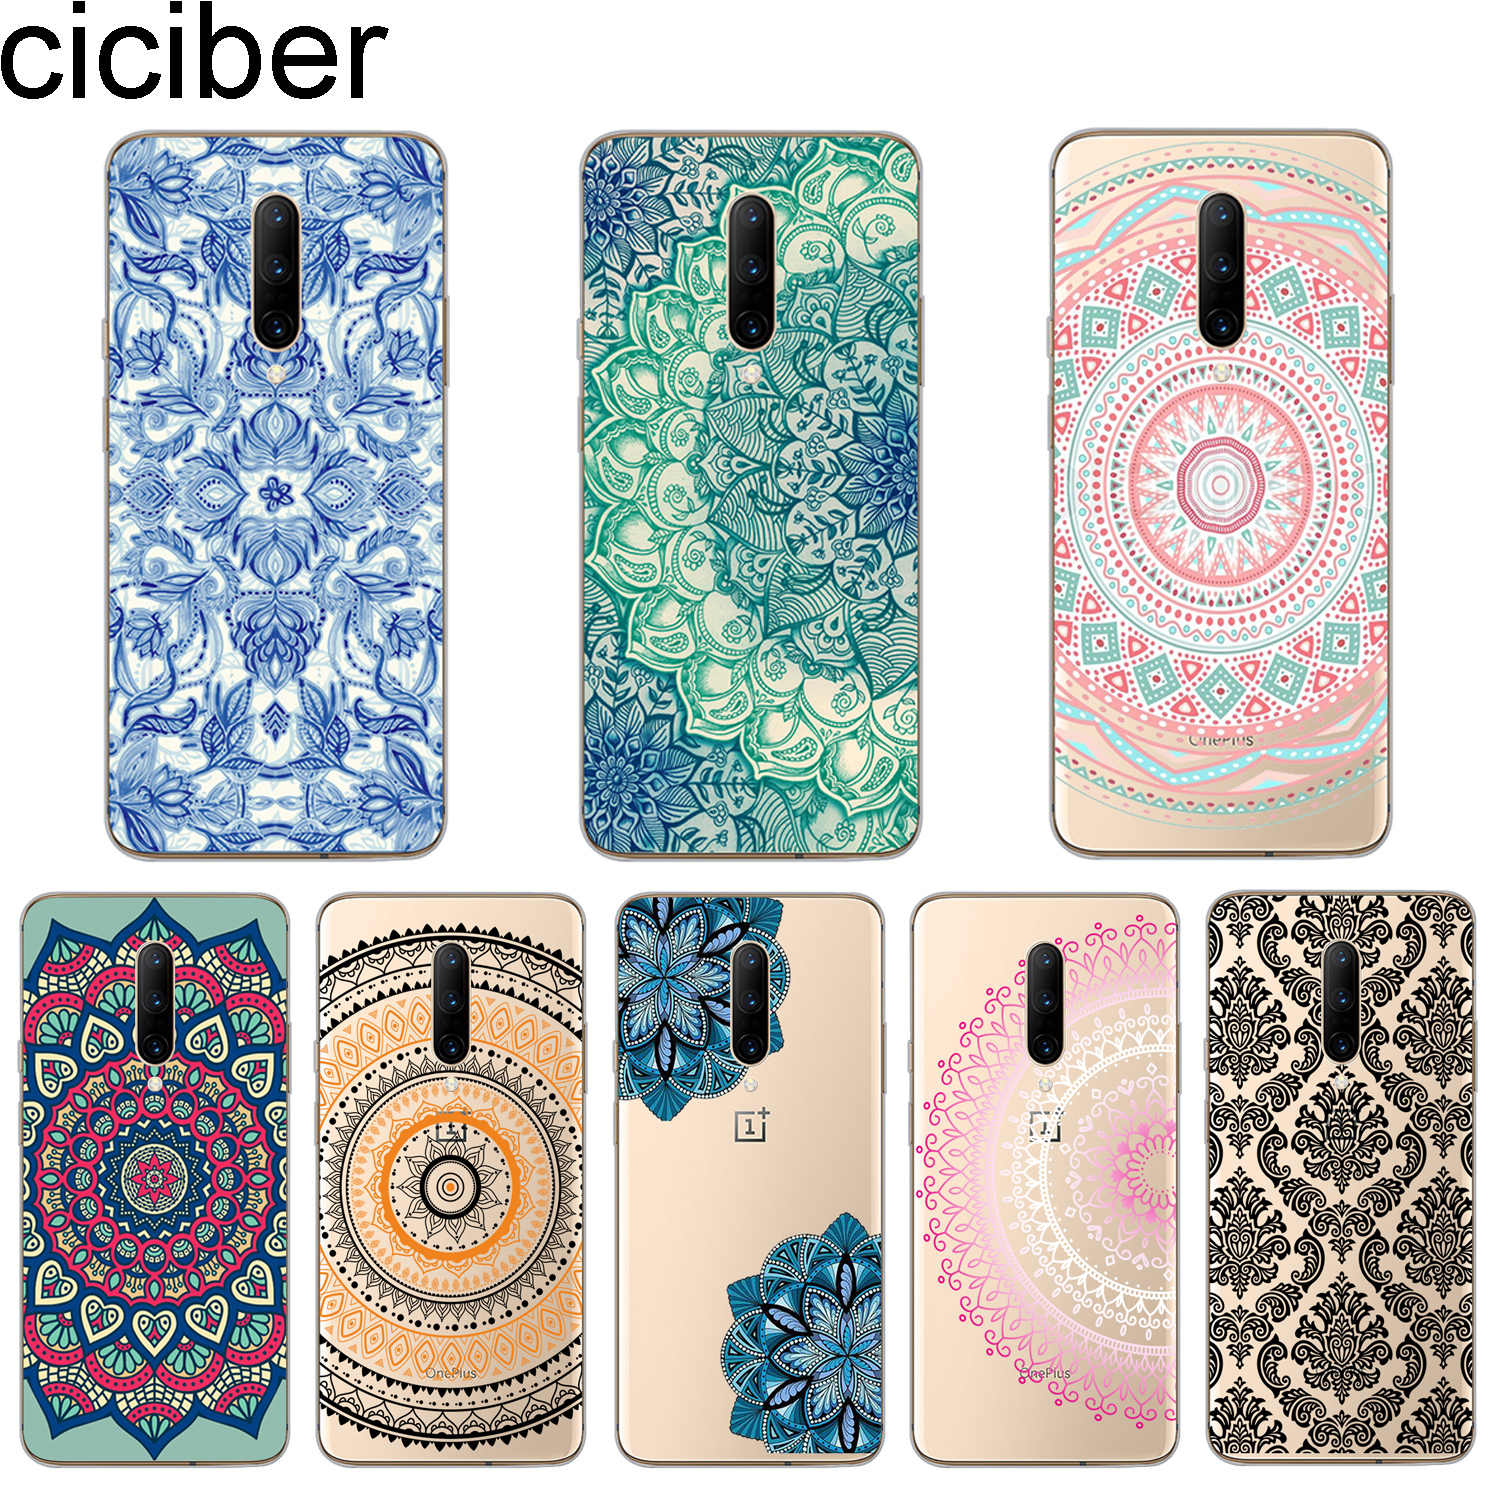 ciciber Mandala pattern Phone Case for Oneplus 7 Pro 6 5 T Soft TPU Back Cover Clear for oneplus 1+7 Pro 1+ 6 1+5 T Fundas Coque